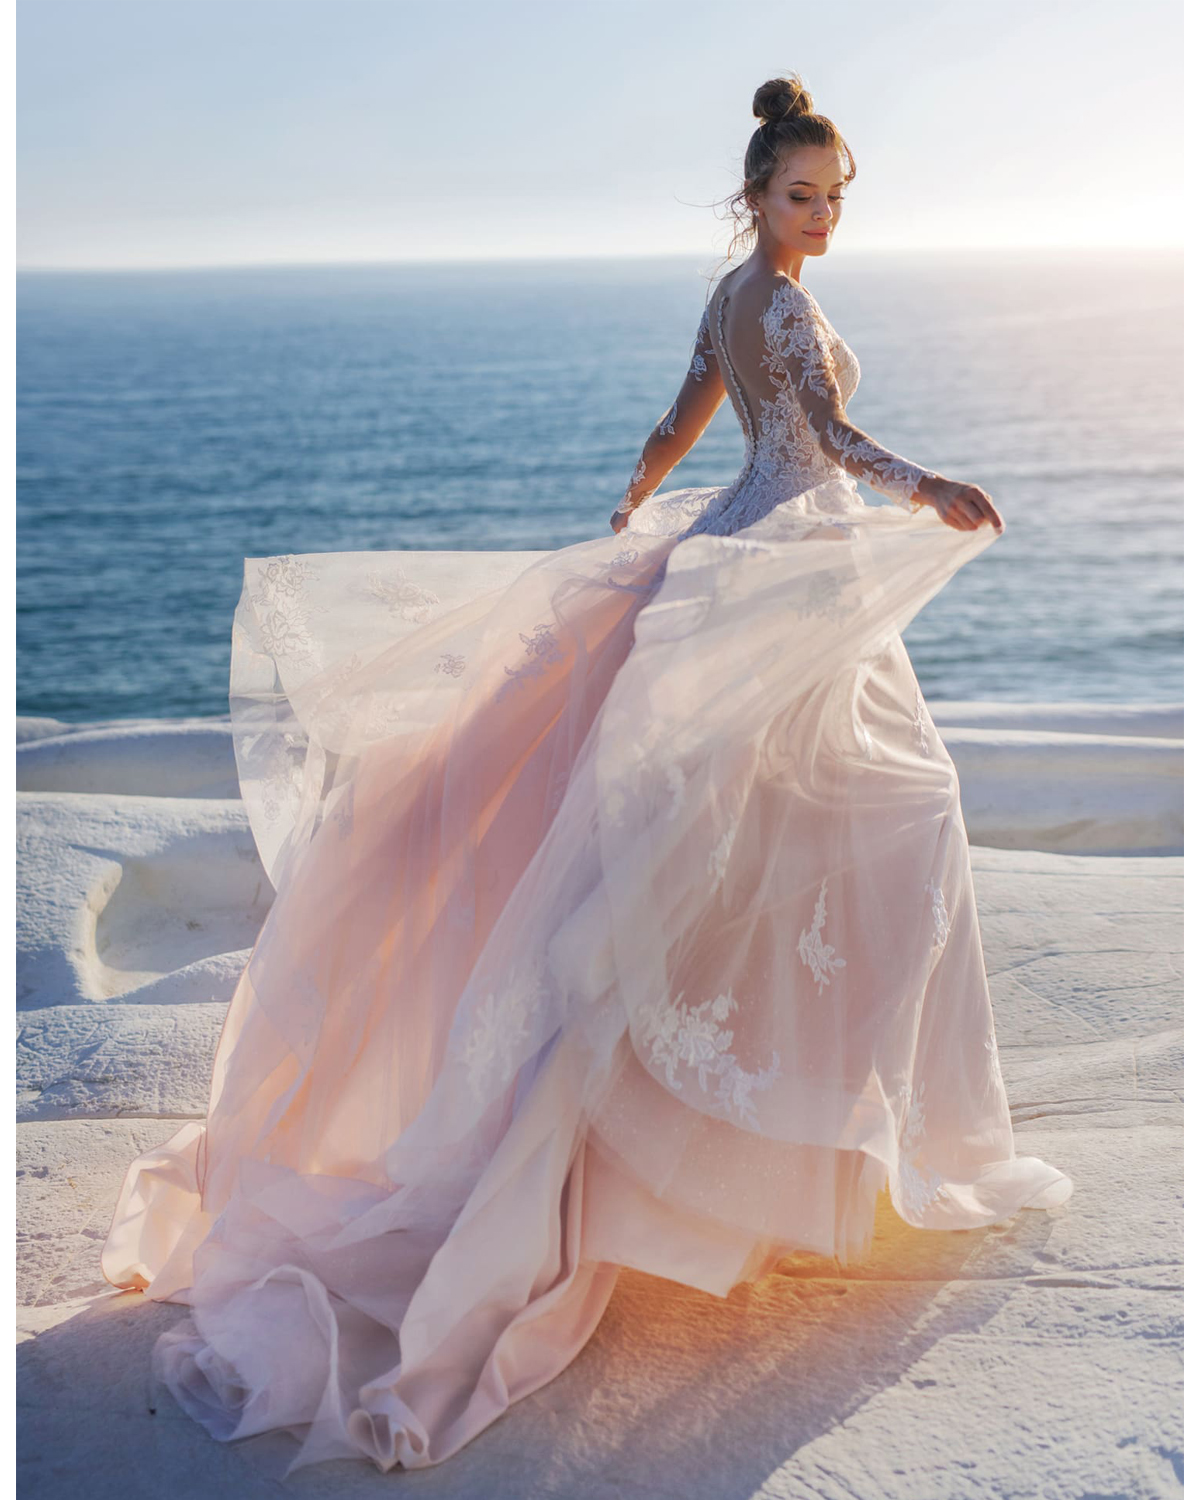 Sexy Boho Wedding Dress 2020 New Applique See Through Back Beach Dress Scoop Neck Tulle Bridal Gown Court Train Wedding Gowns